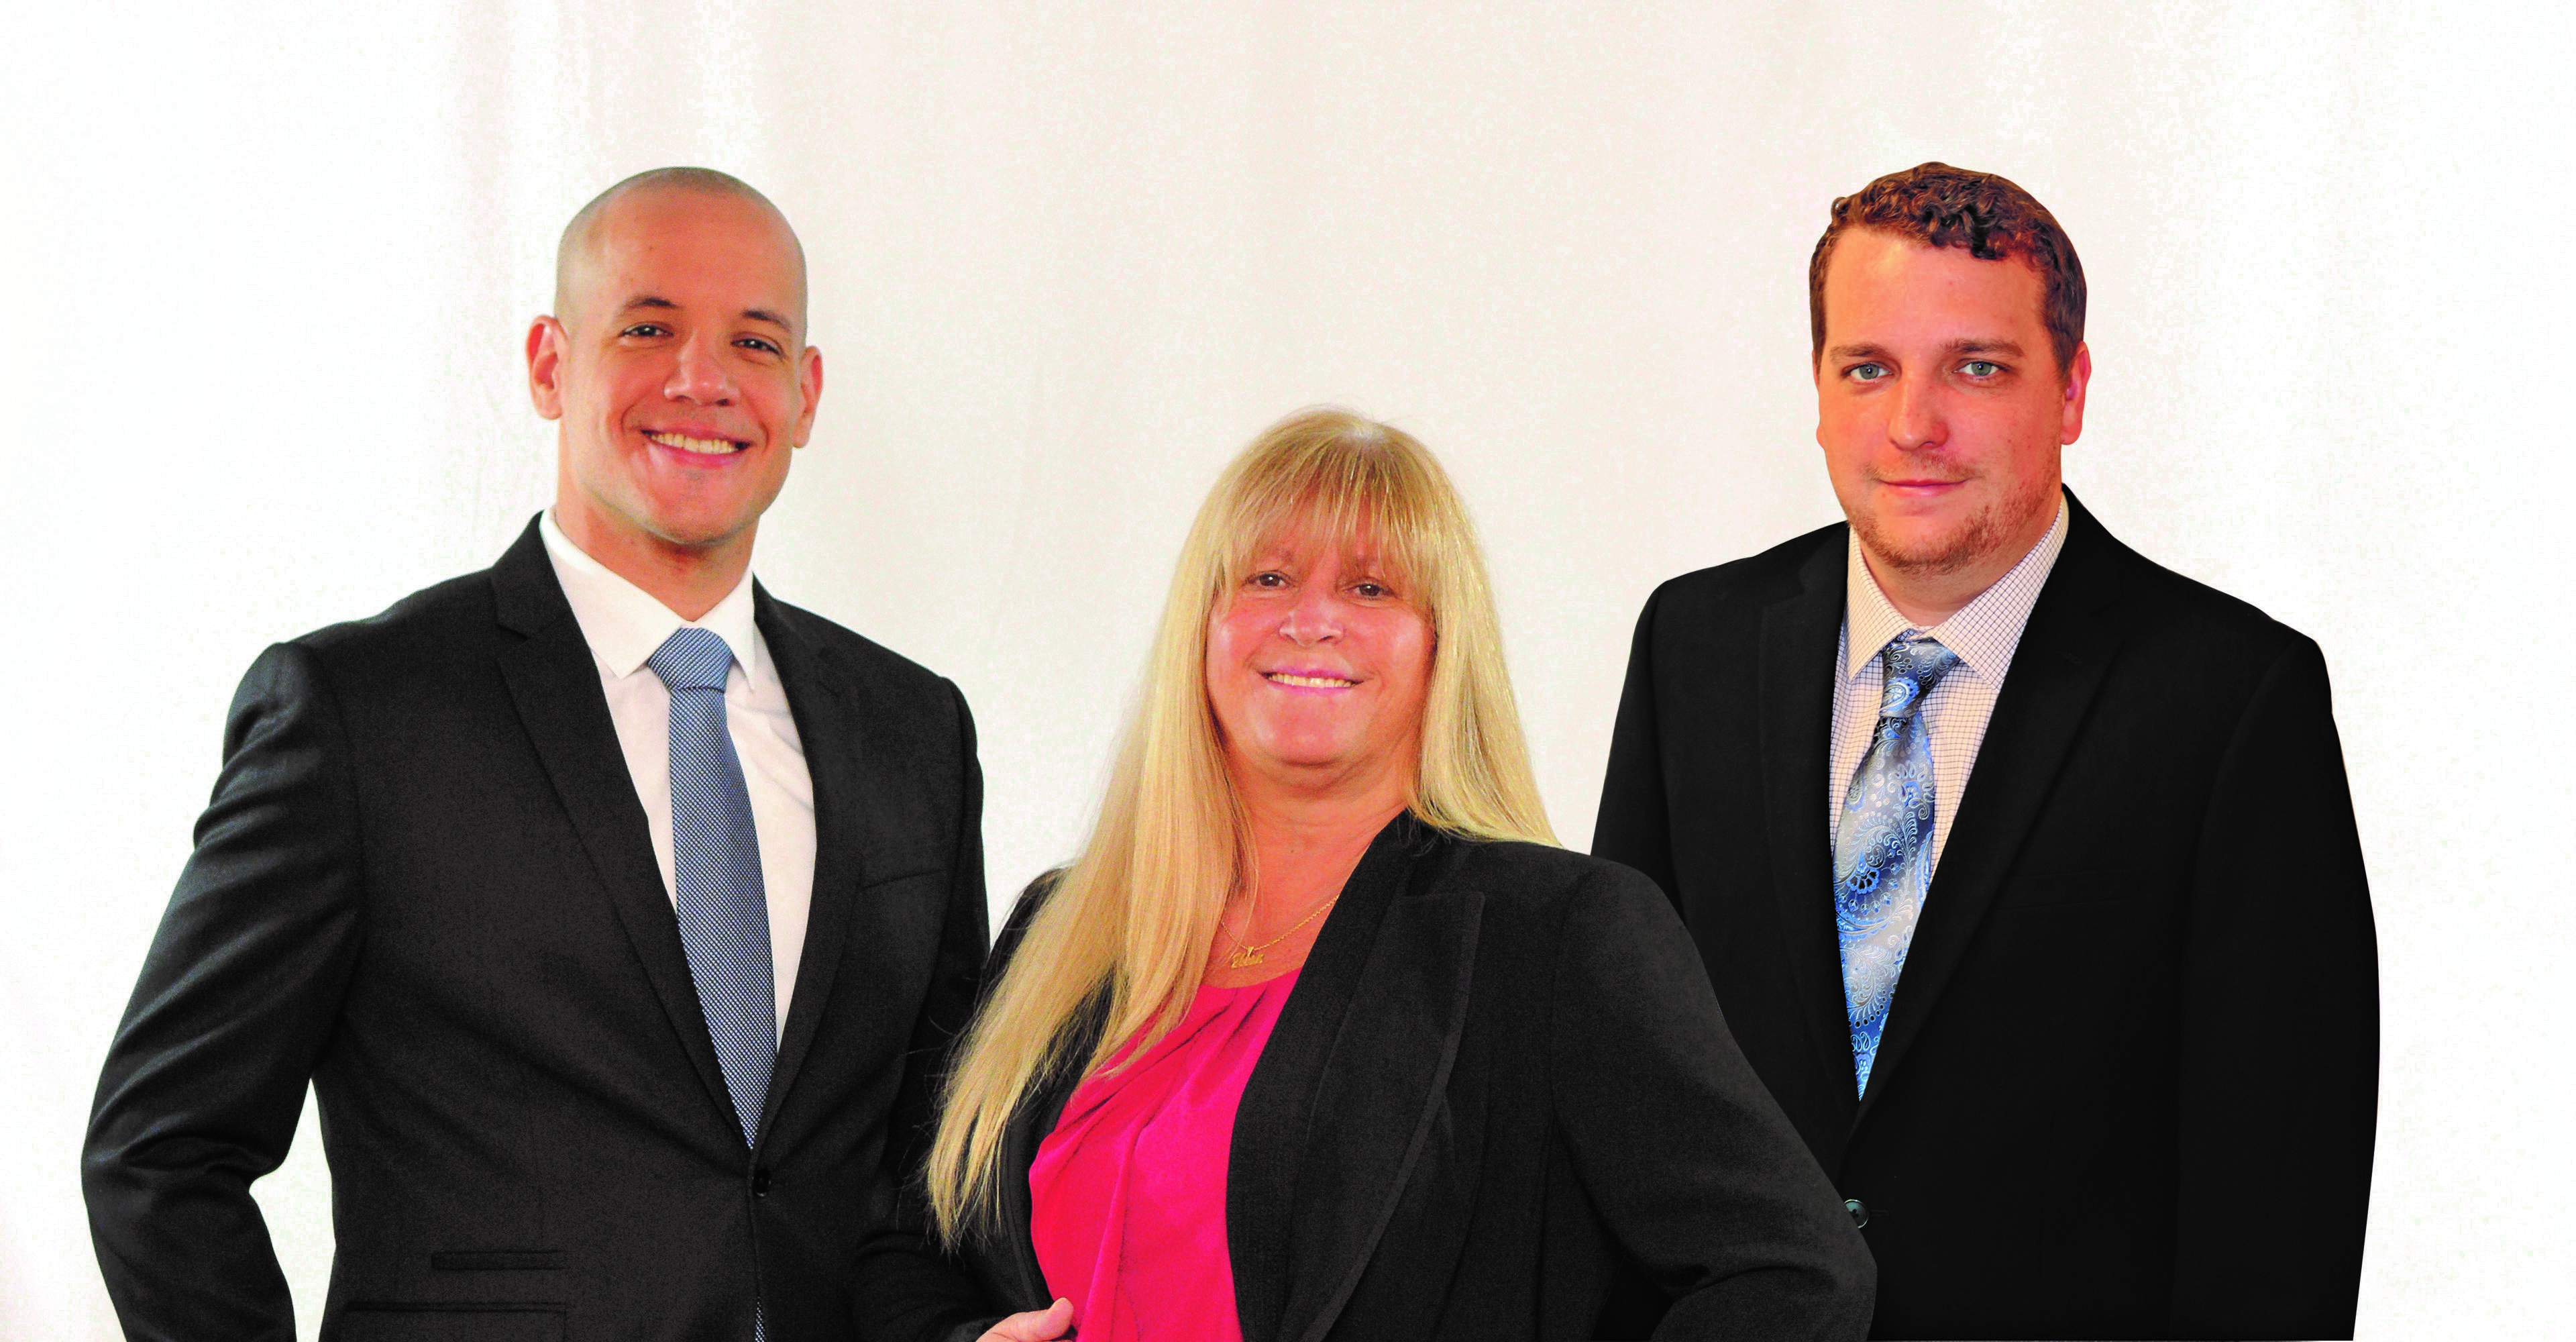 TVIP Financial Services Team: Carlos Colon, Diana Johnson and Kyler Newcomb